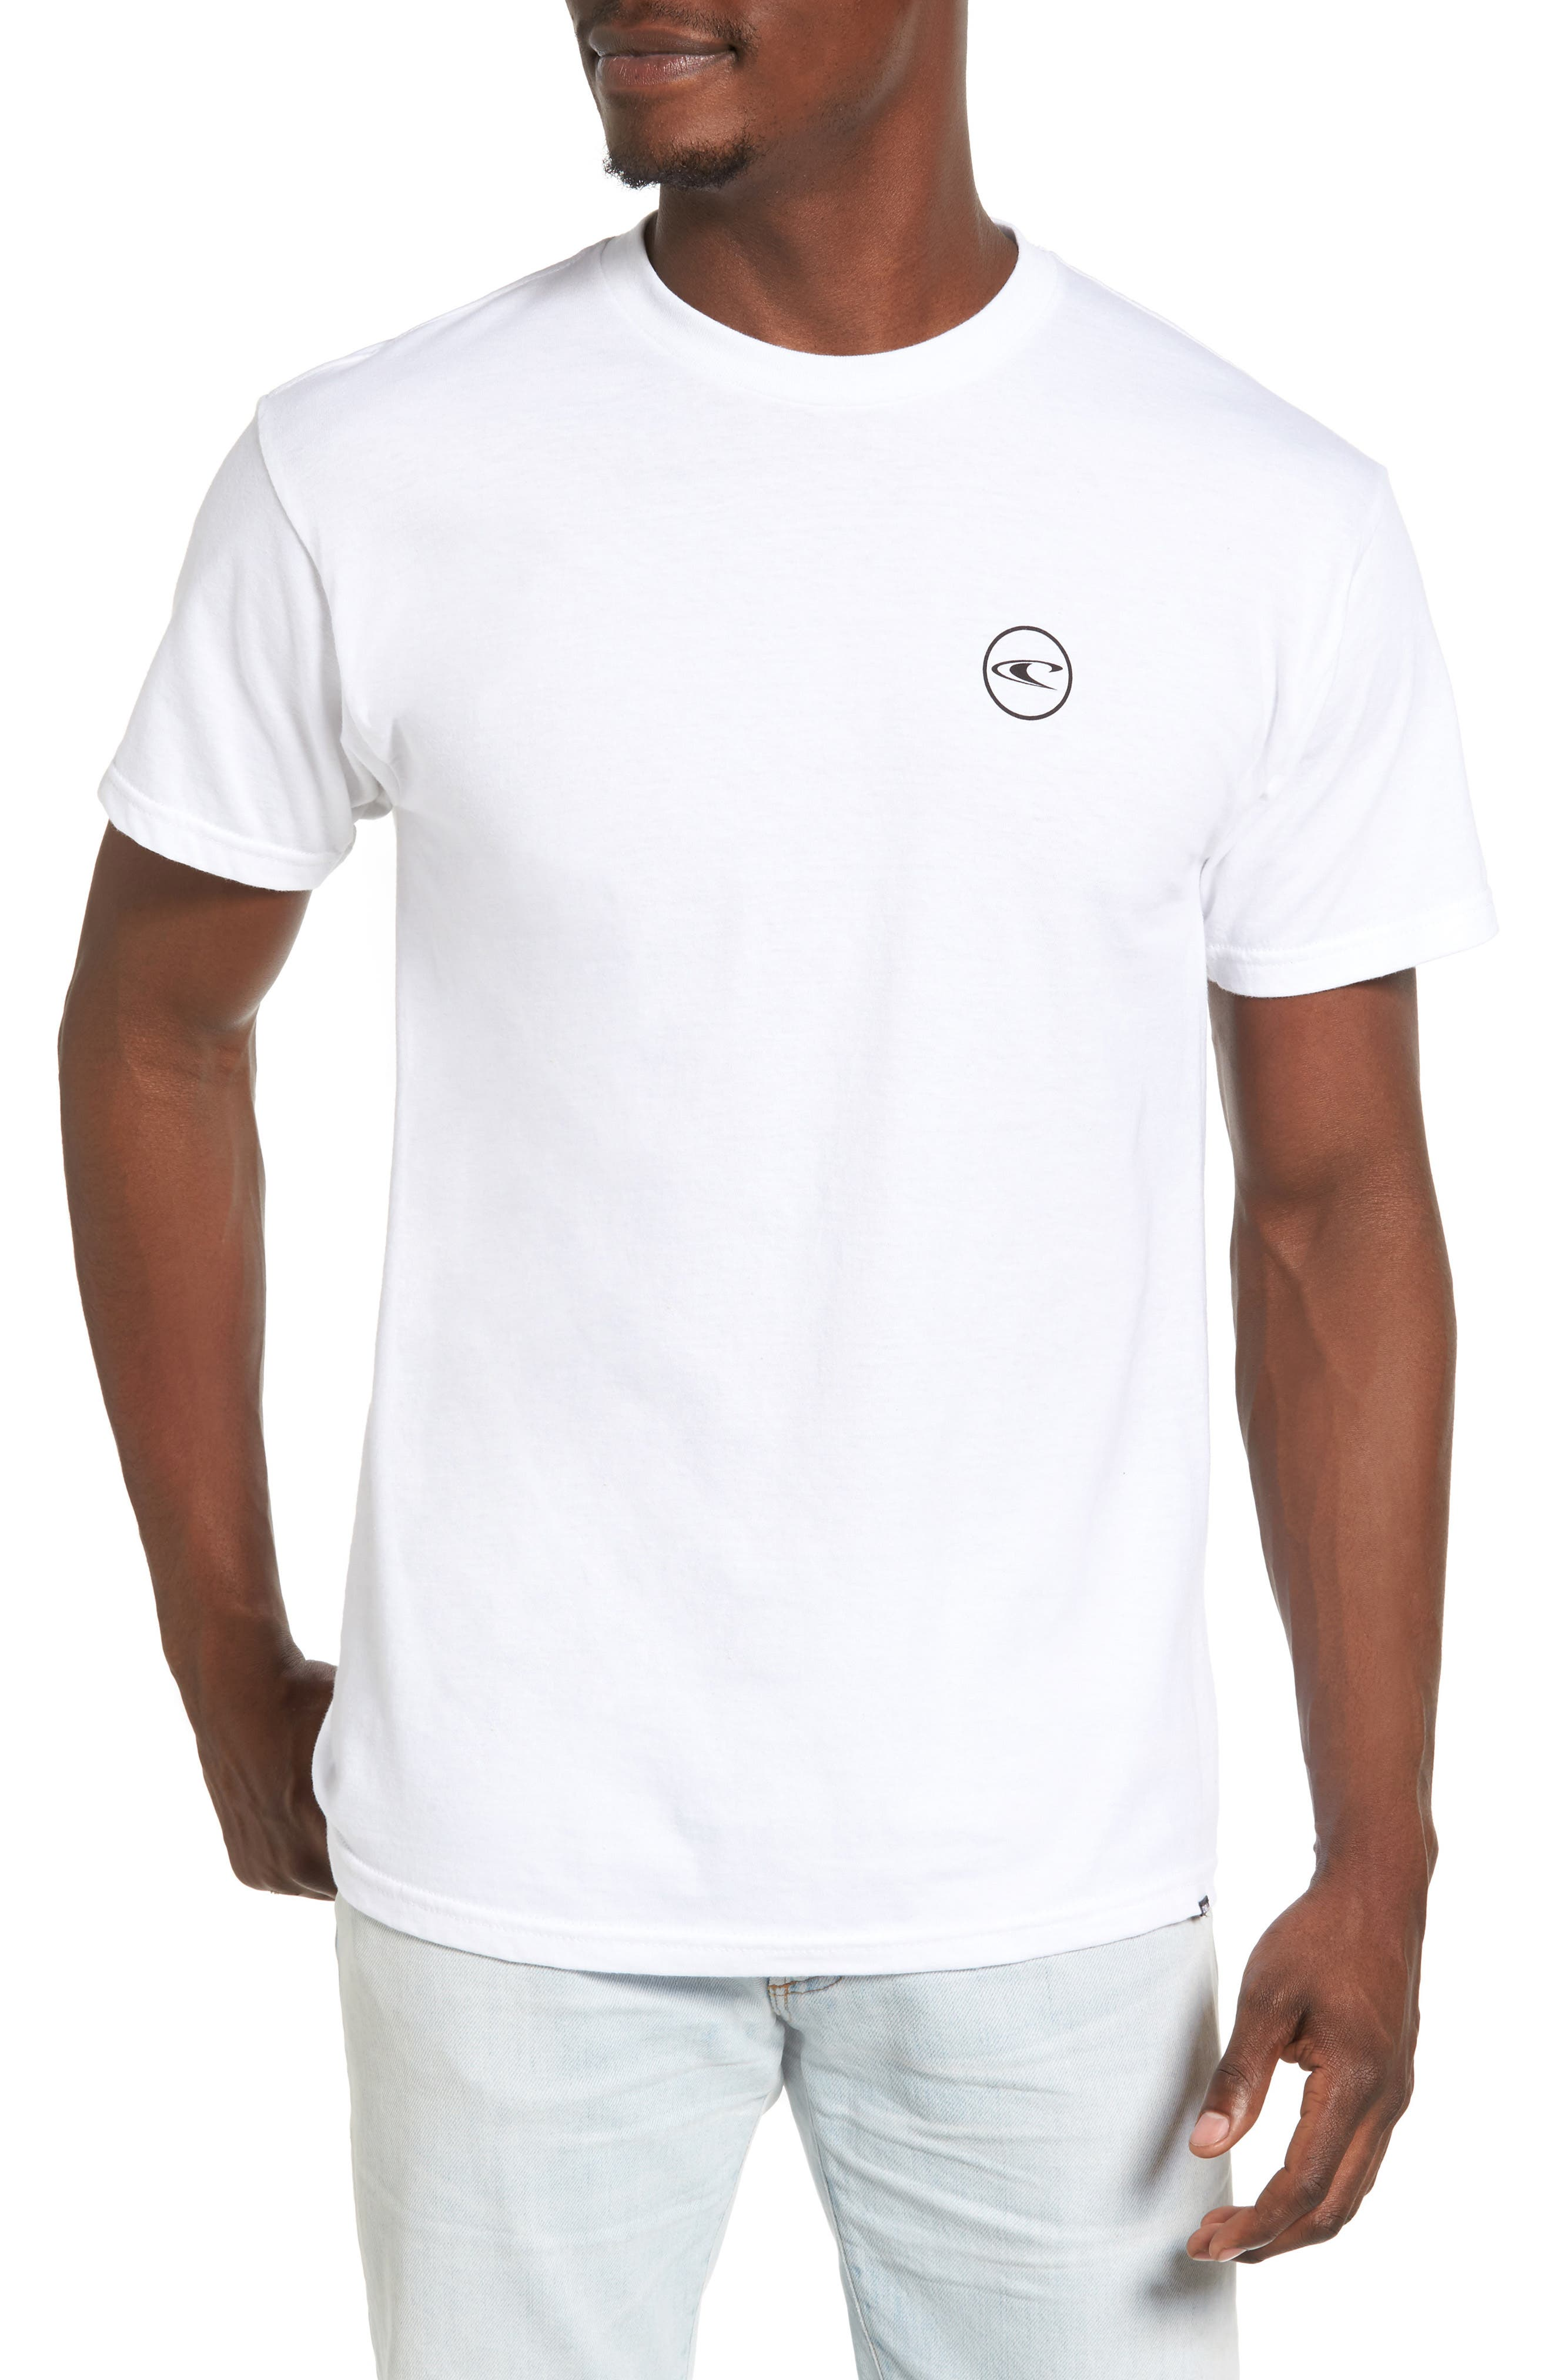 O'Neill Boards Graphic T-Shirt